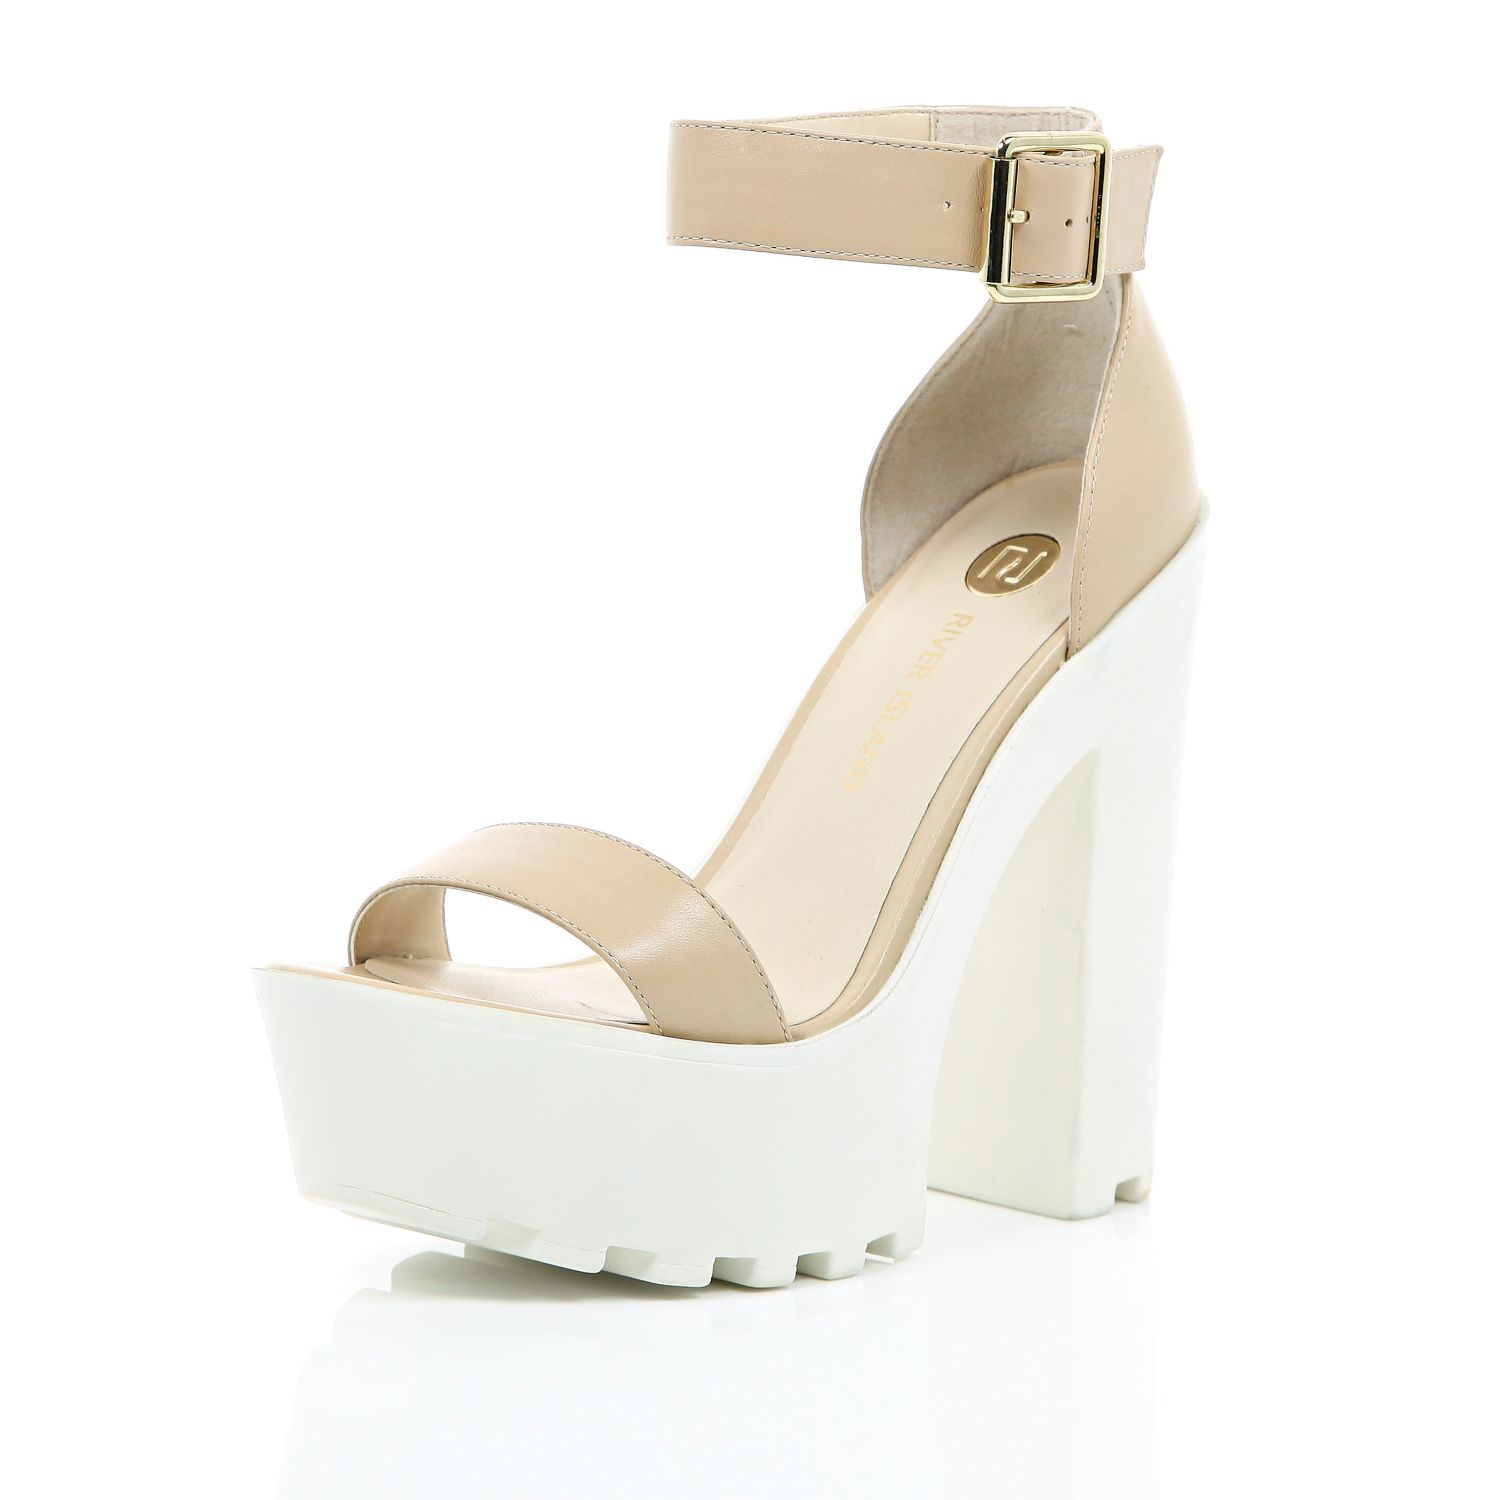 19118ada3d3 River Island Nude Leather Chunky Cleated Sole Platforms in Natural ...